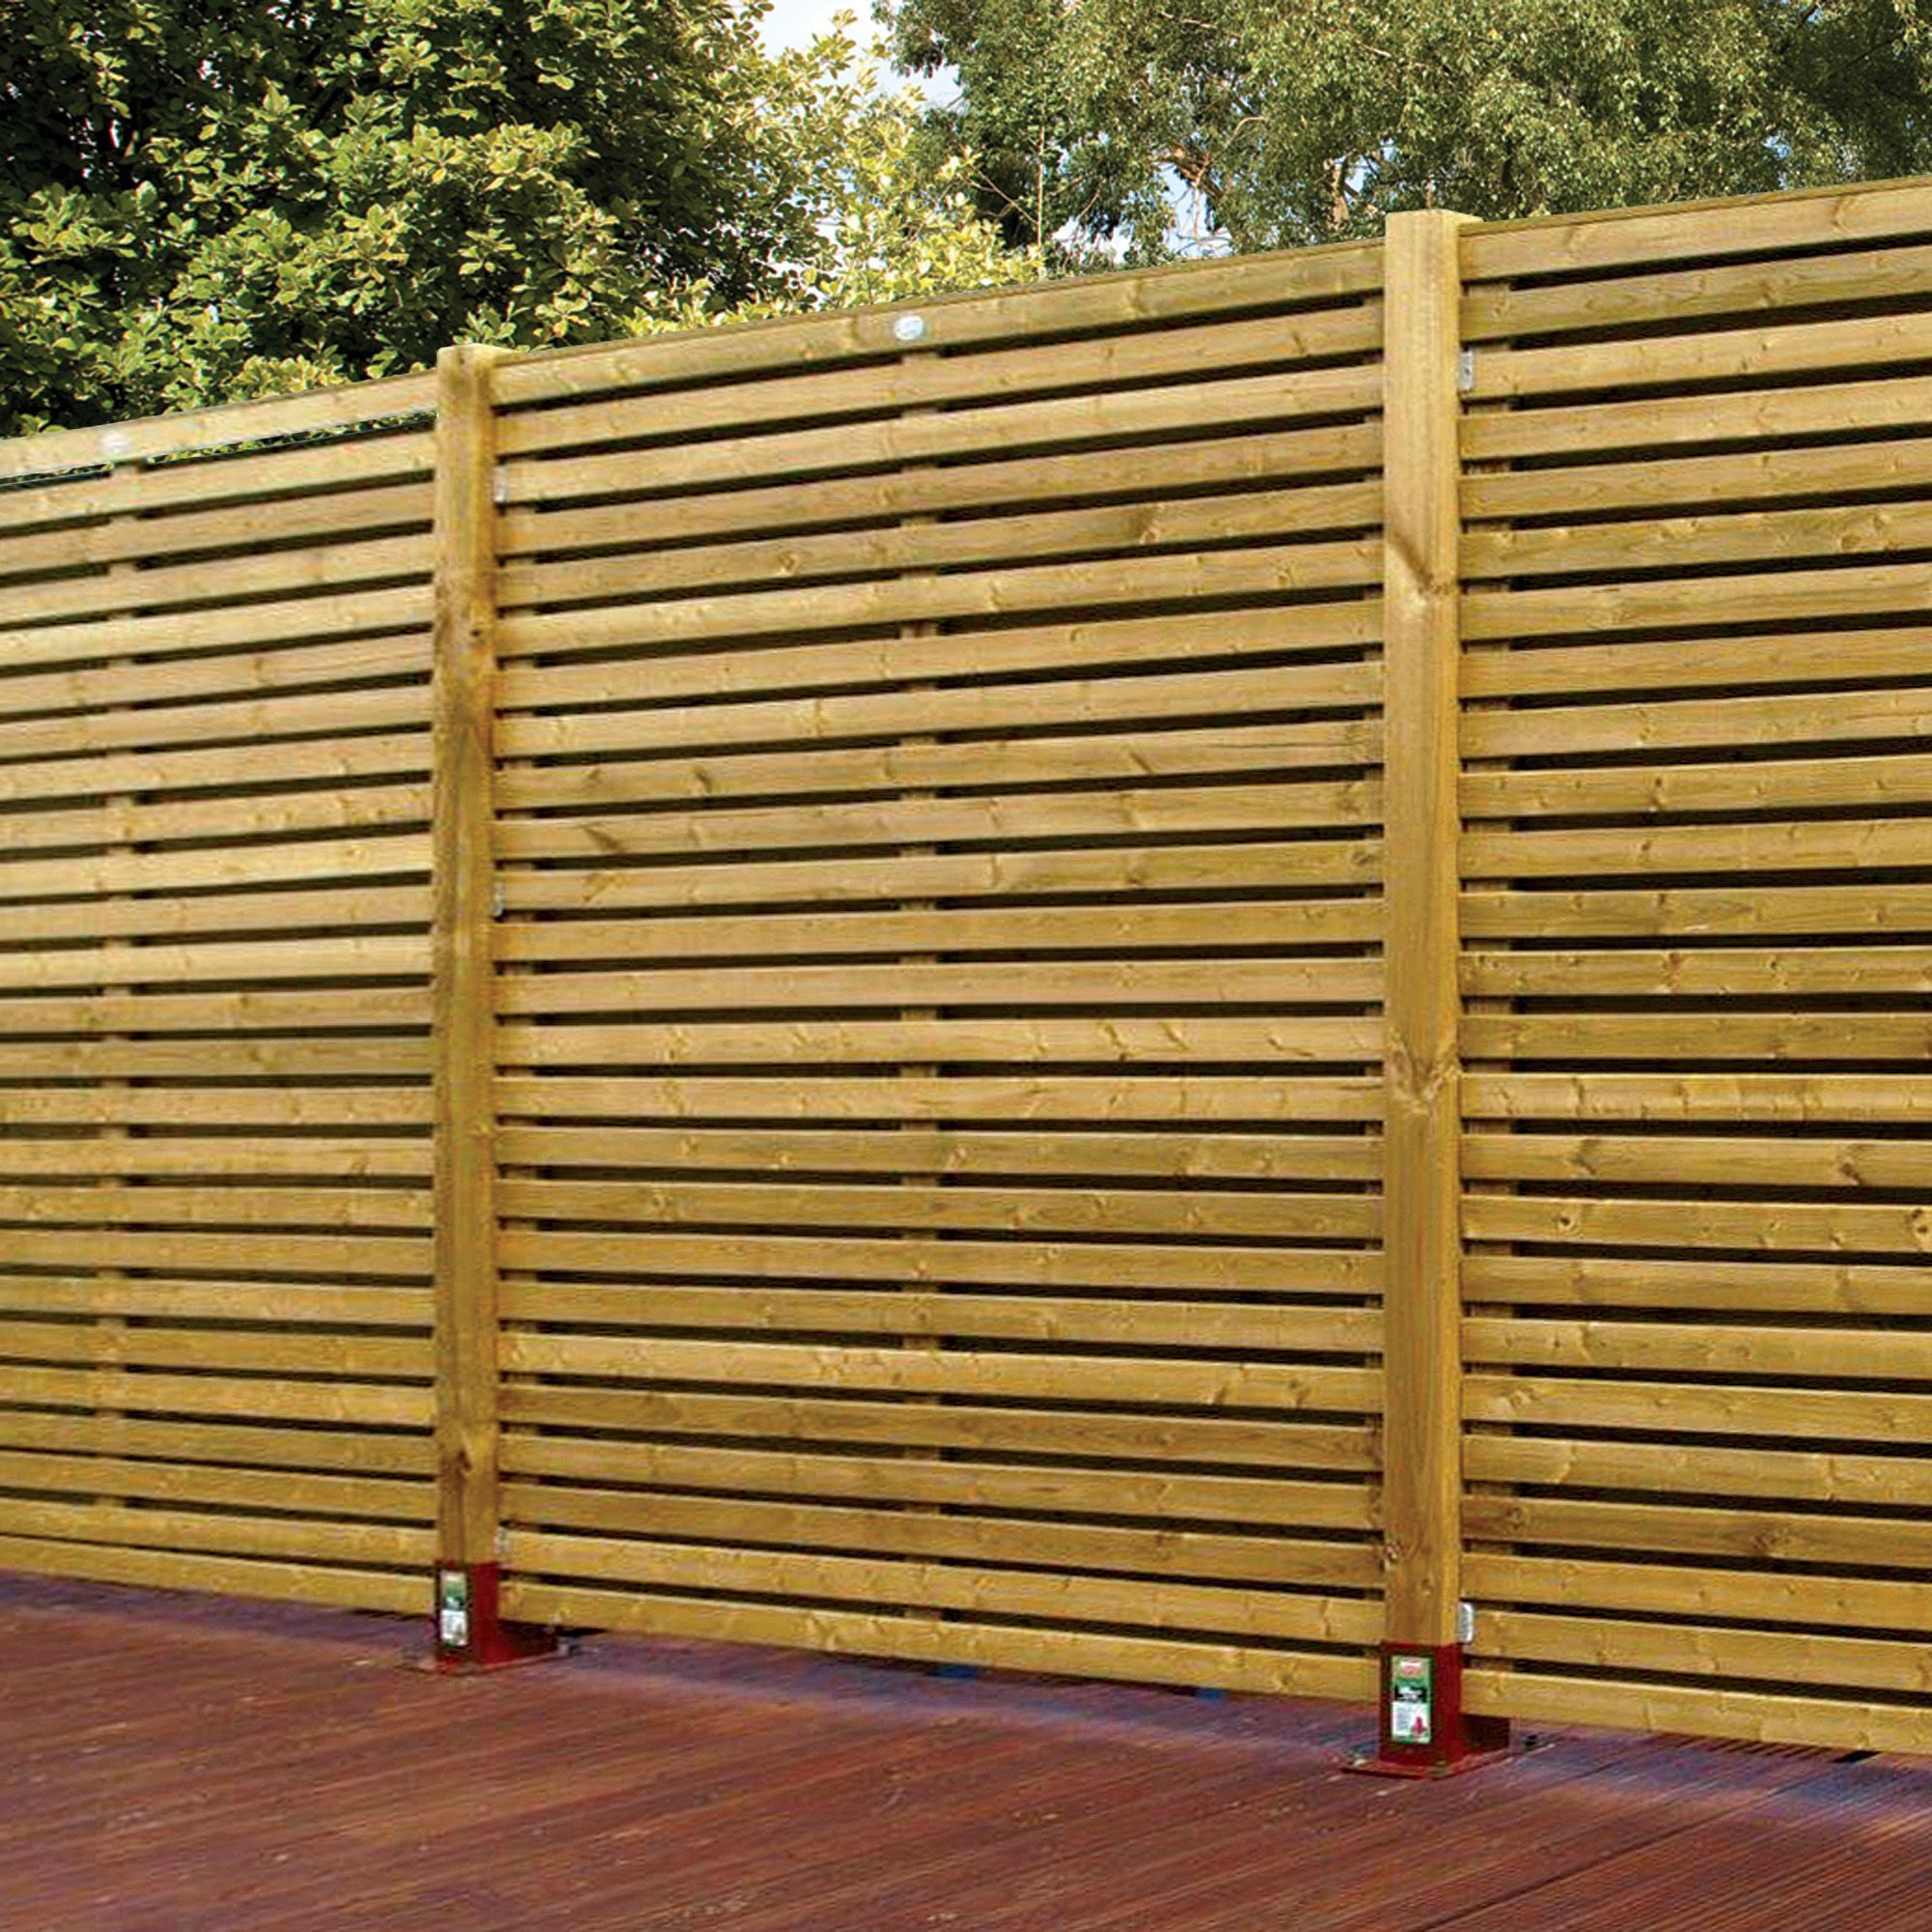 Very Impressive portraiture of Fence Panel (W)1.8m (H)1.8m Pack of 5 Departments DIY at B&Q with #9B7A30 color and 2000x2000 pixels